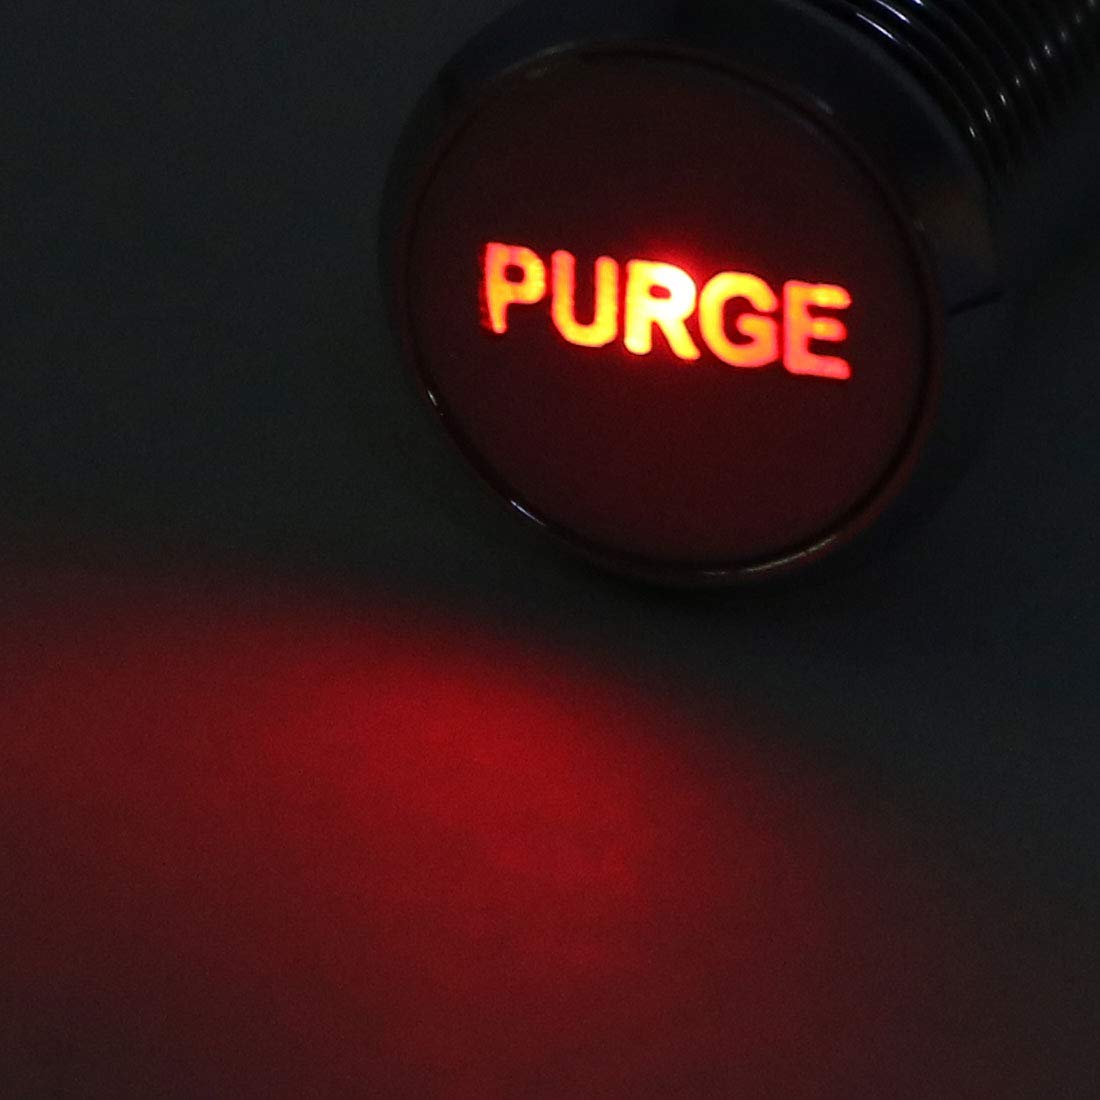 Purge uxcell Signal Indicator Light DC 12V 8mm Red LED Metal Shell with Symbol